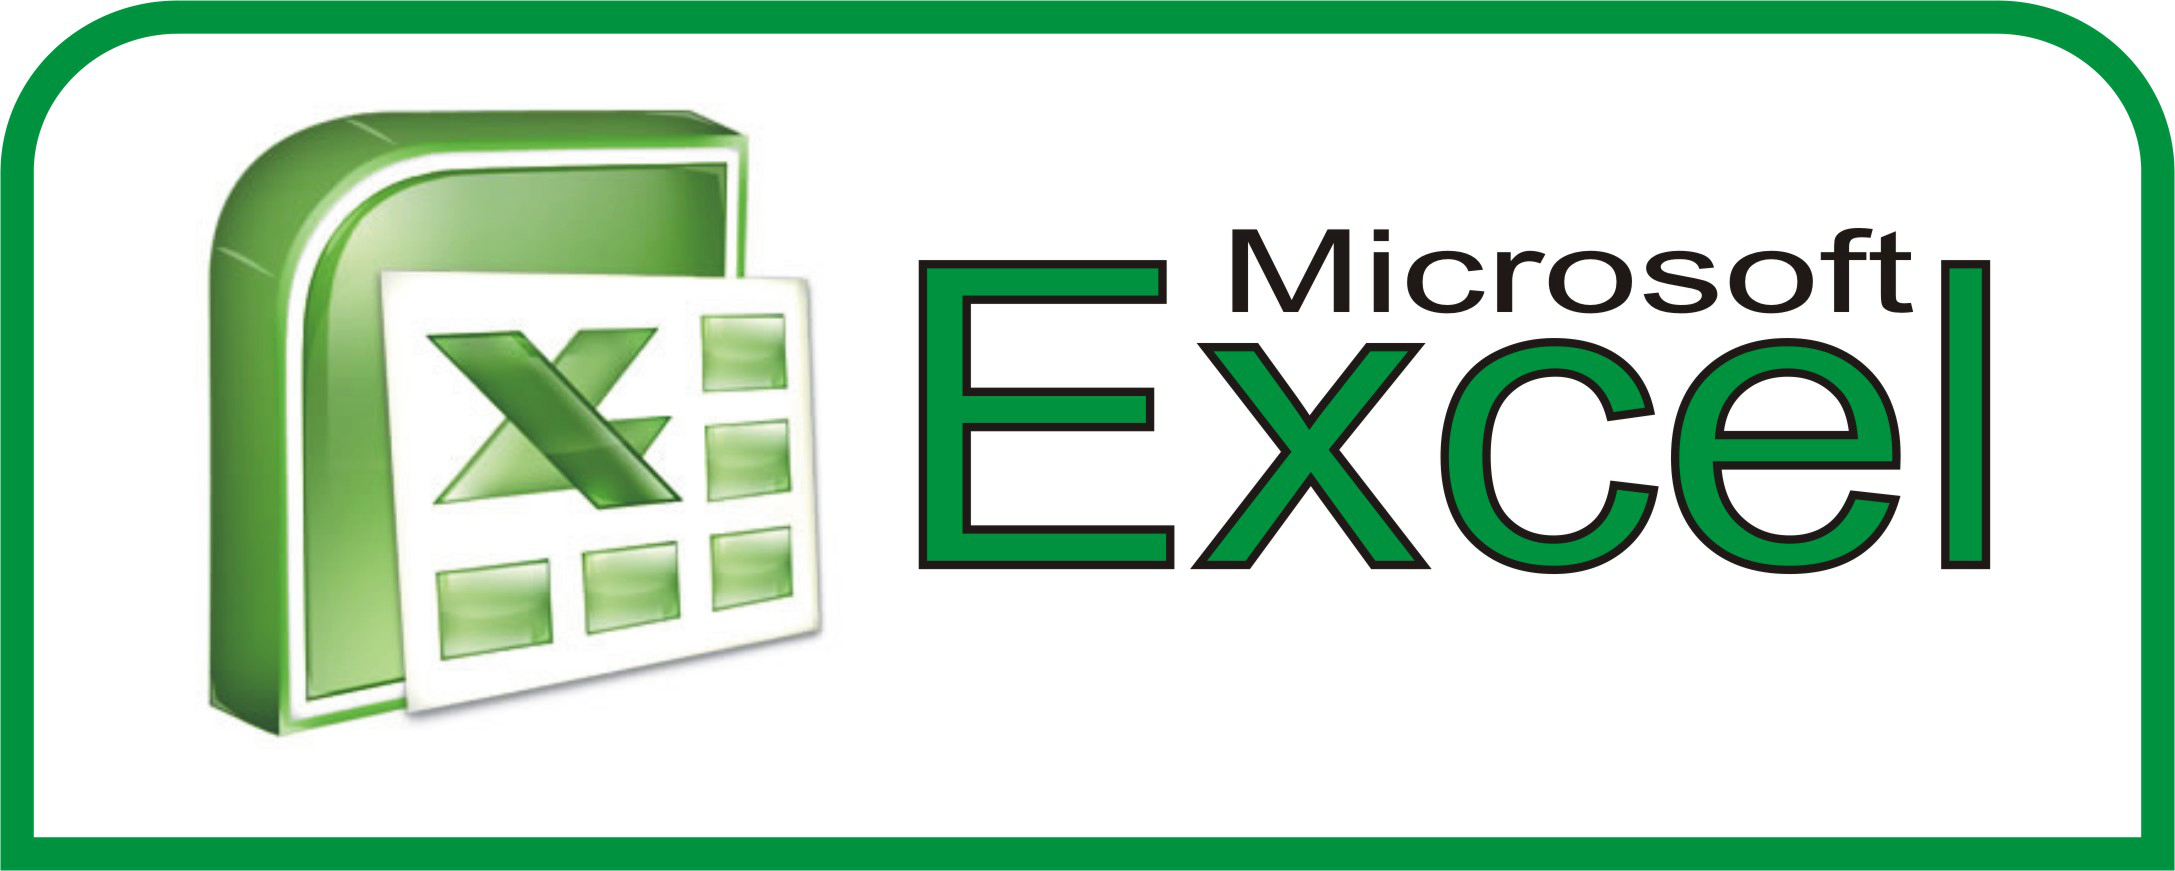 Ediblewildsus  Winning  Excel Shortcuts You Probably Didnt Know About  Techdissected With Fetching Alphabetize Column In Excel Besides How To Calculate Percentage In Excel  Furthermore Excel If And Then Function With Cute Time Calculation In Excel Also Splitting Columns In Excel In Addition Repeat Function In Excel And Yield Function Excel As Well As How To Insert Line Break In Excel Additionally Excel How To Delete Duplicates From Techdissectedcom With Ediblewildsus  Fetching  Excel Shortcuts You Probably Didnt Know About  Techdissected With Cute Alphabetize Column In Excel Besides How To Calculate Percentage In Excel  Furthermore Excel If And Then Function And Winning Time Calculation In Excel Also Splitting Columns In Excel In Addition Repeat Function In Excel From Techdissectedcom